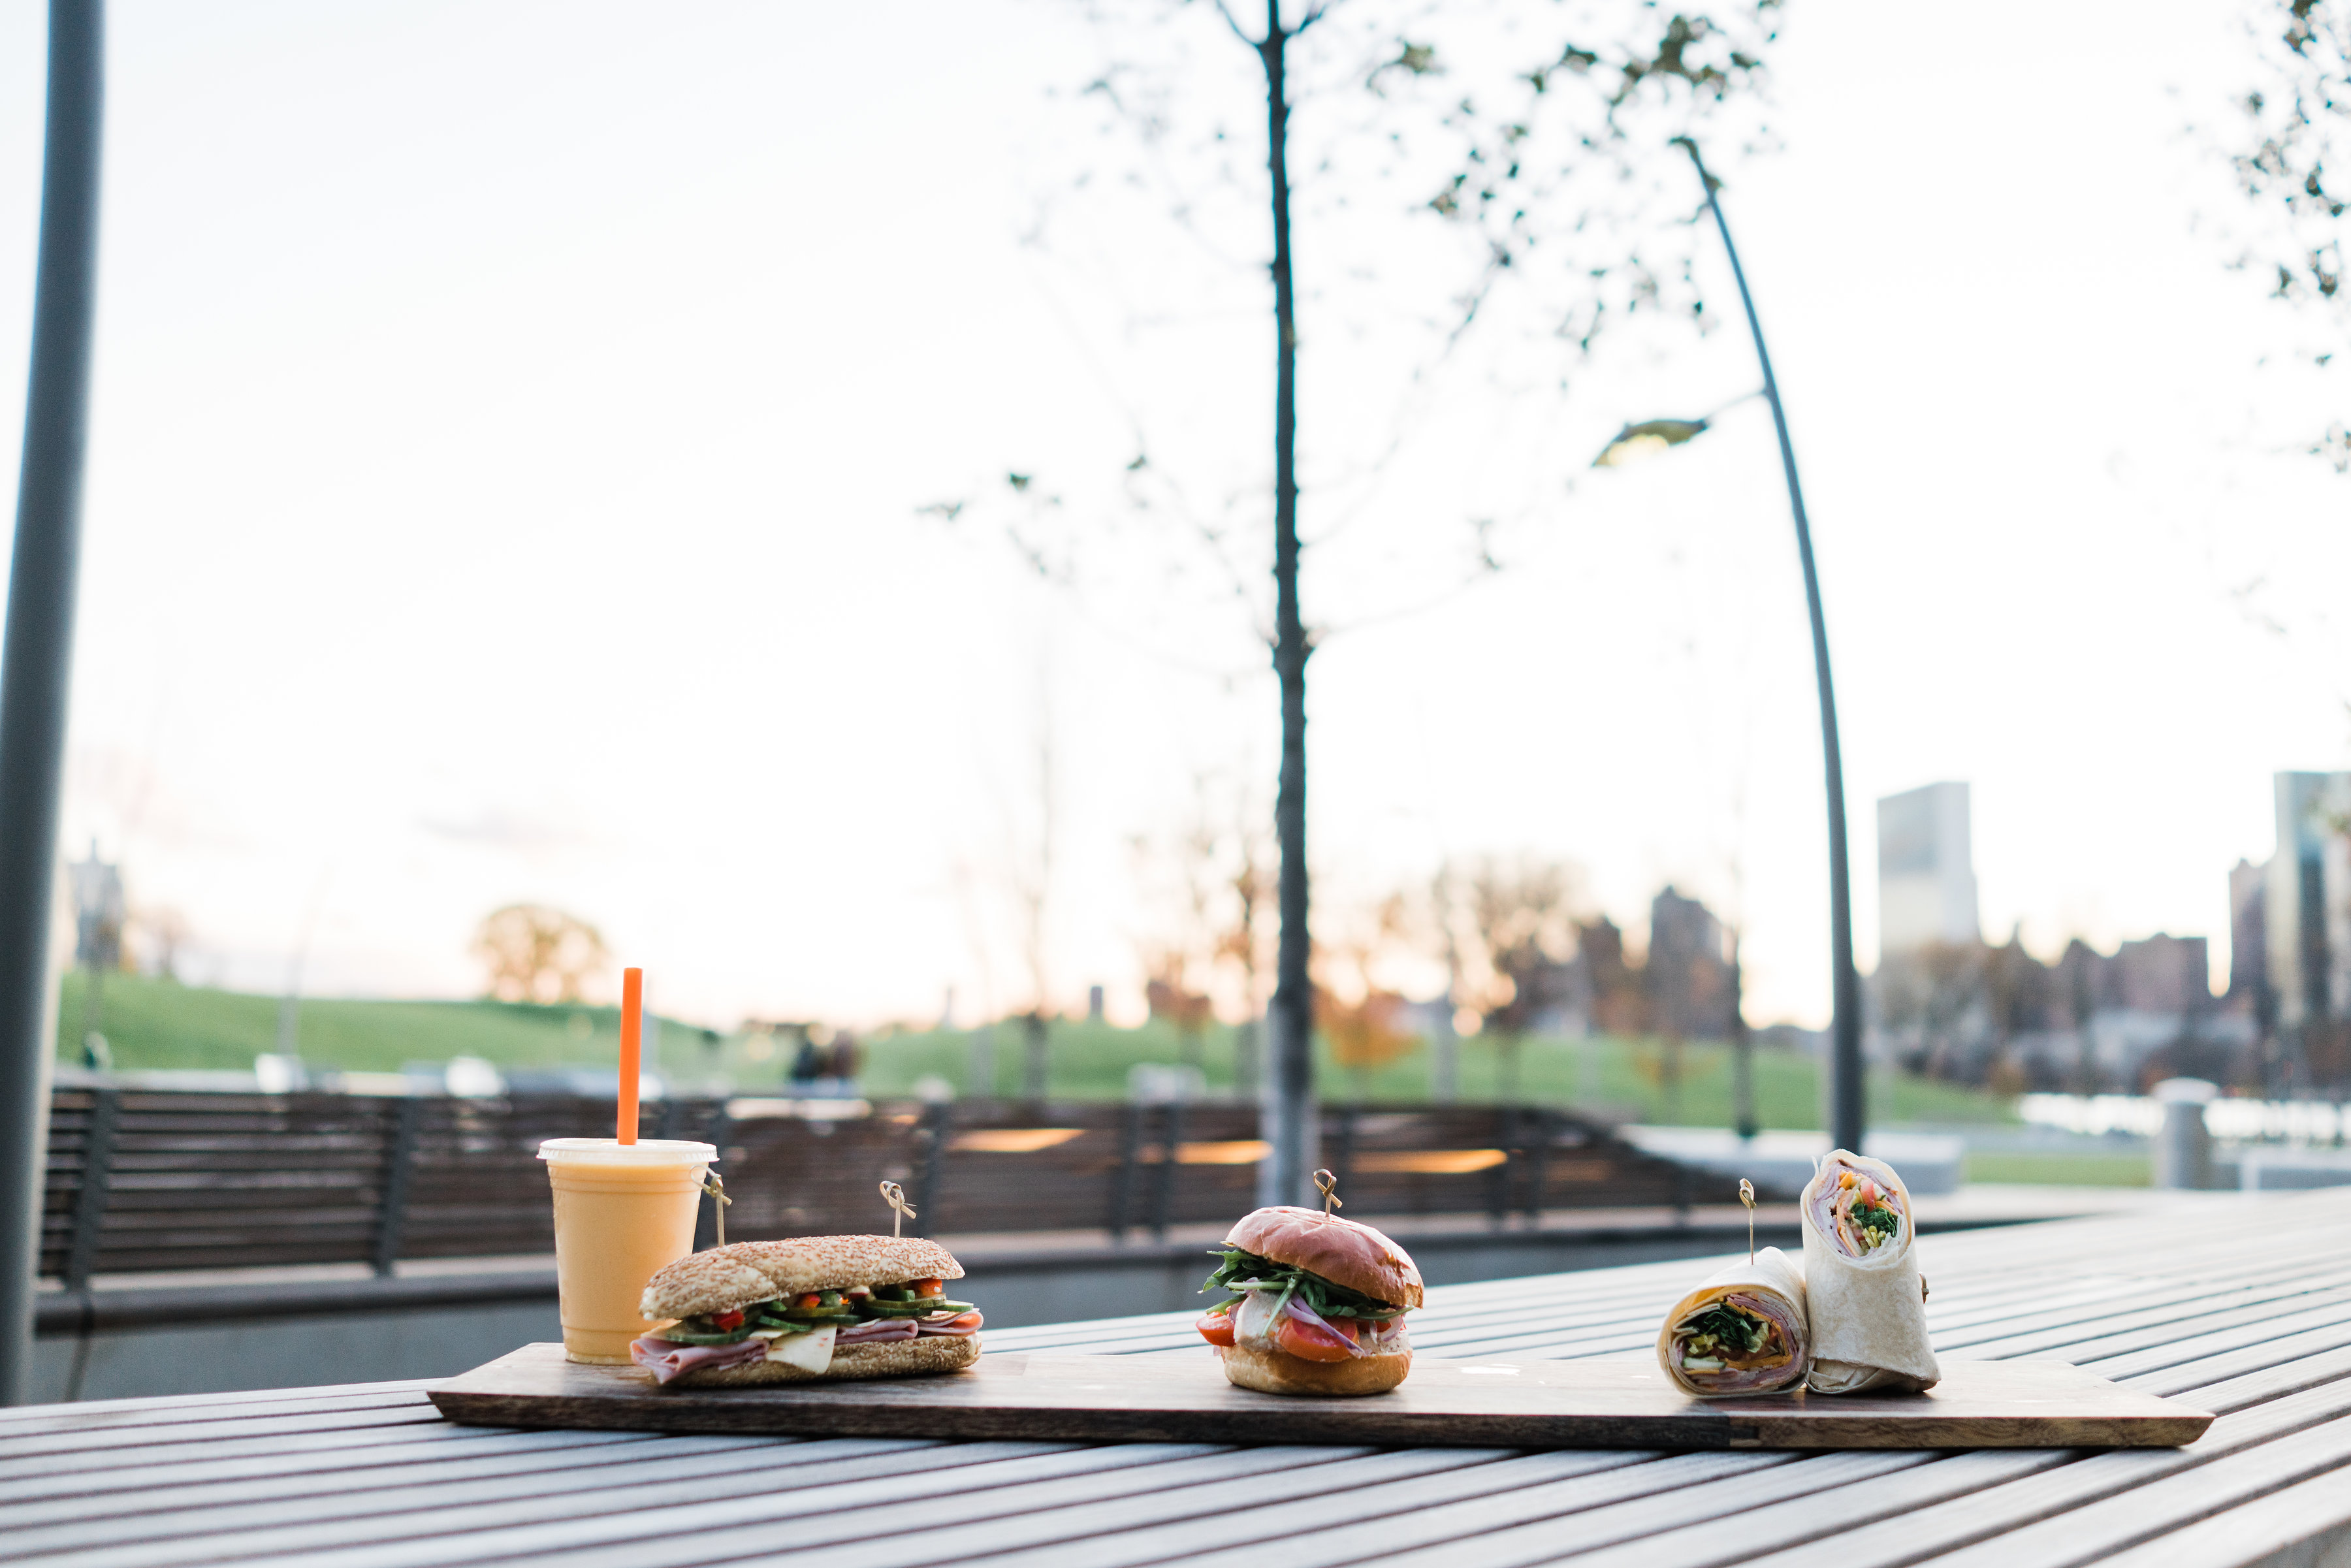 table in a park with food items ontop: a drink in a plastic cup and straw with a sub-sandwich, a large burger, and a wrap sandwich sliced in two